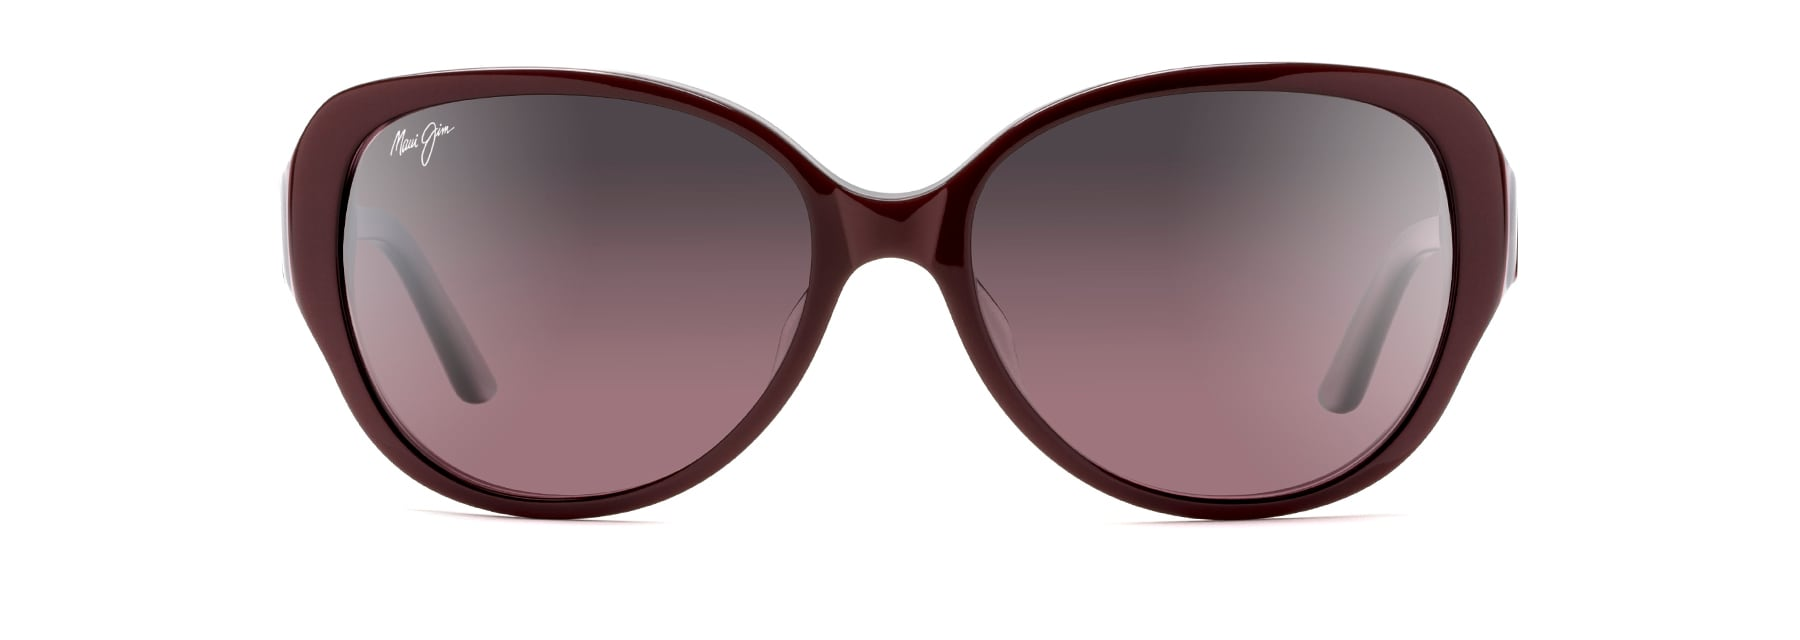 5123ea4da8 Swept Away Polarised Sunglasses